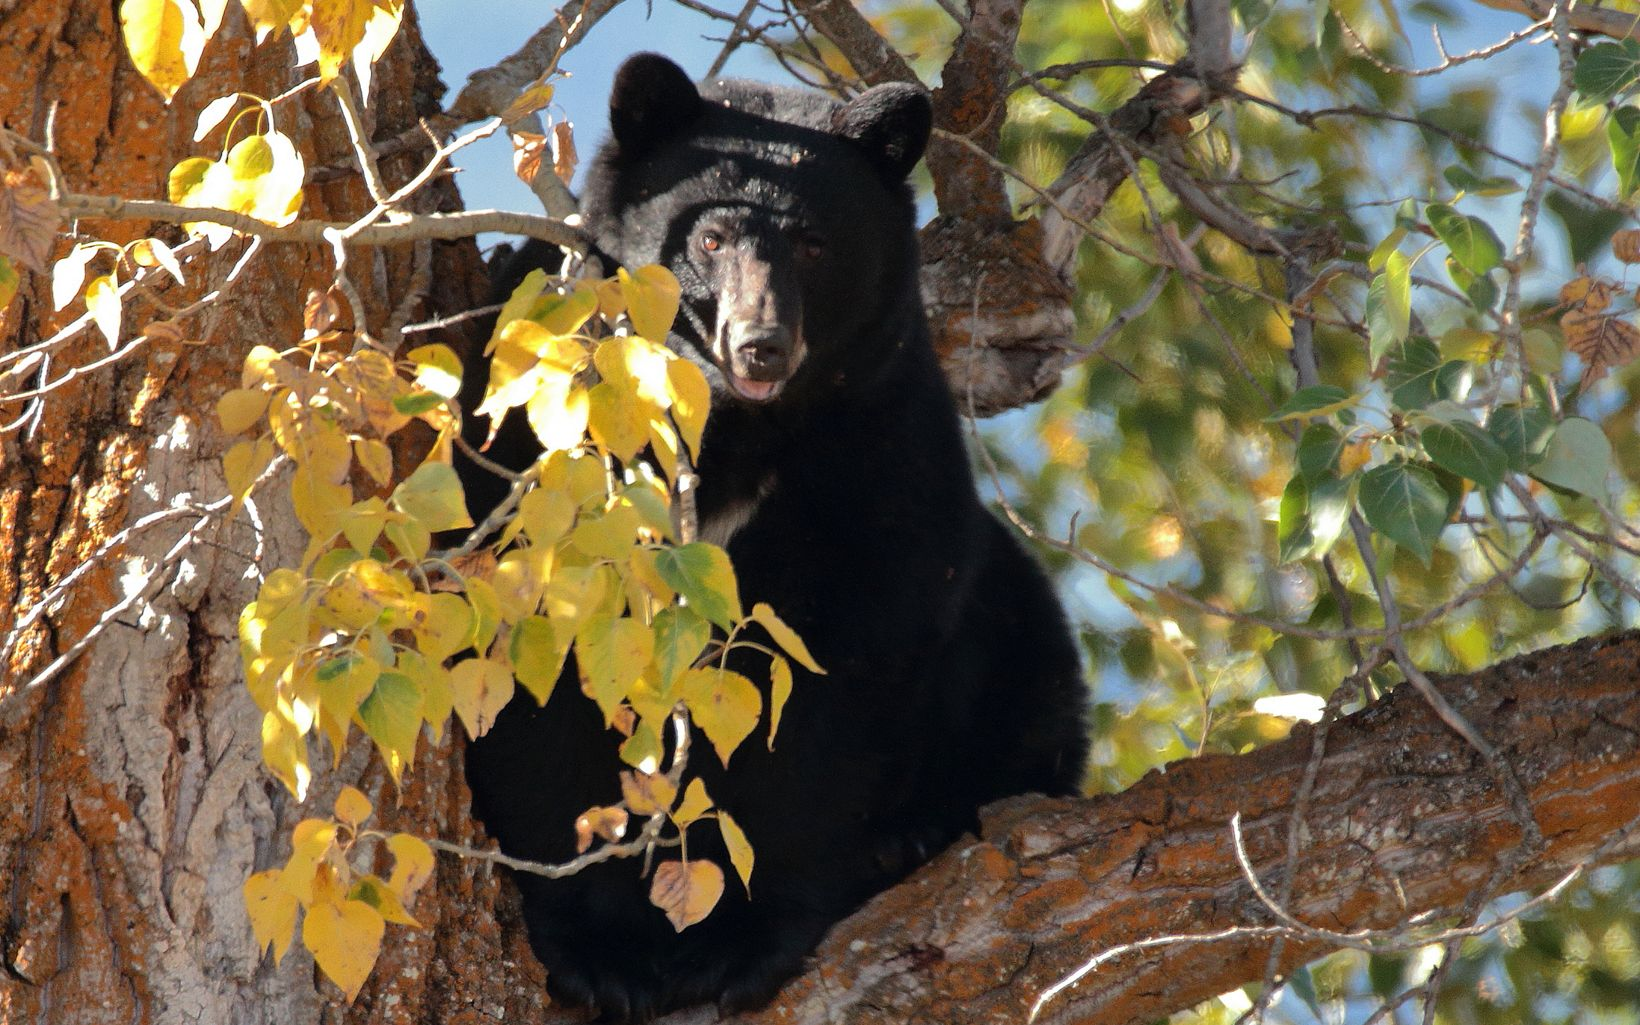 A black bear keeps an eye out from it's tree perch at Ball Creek